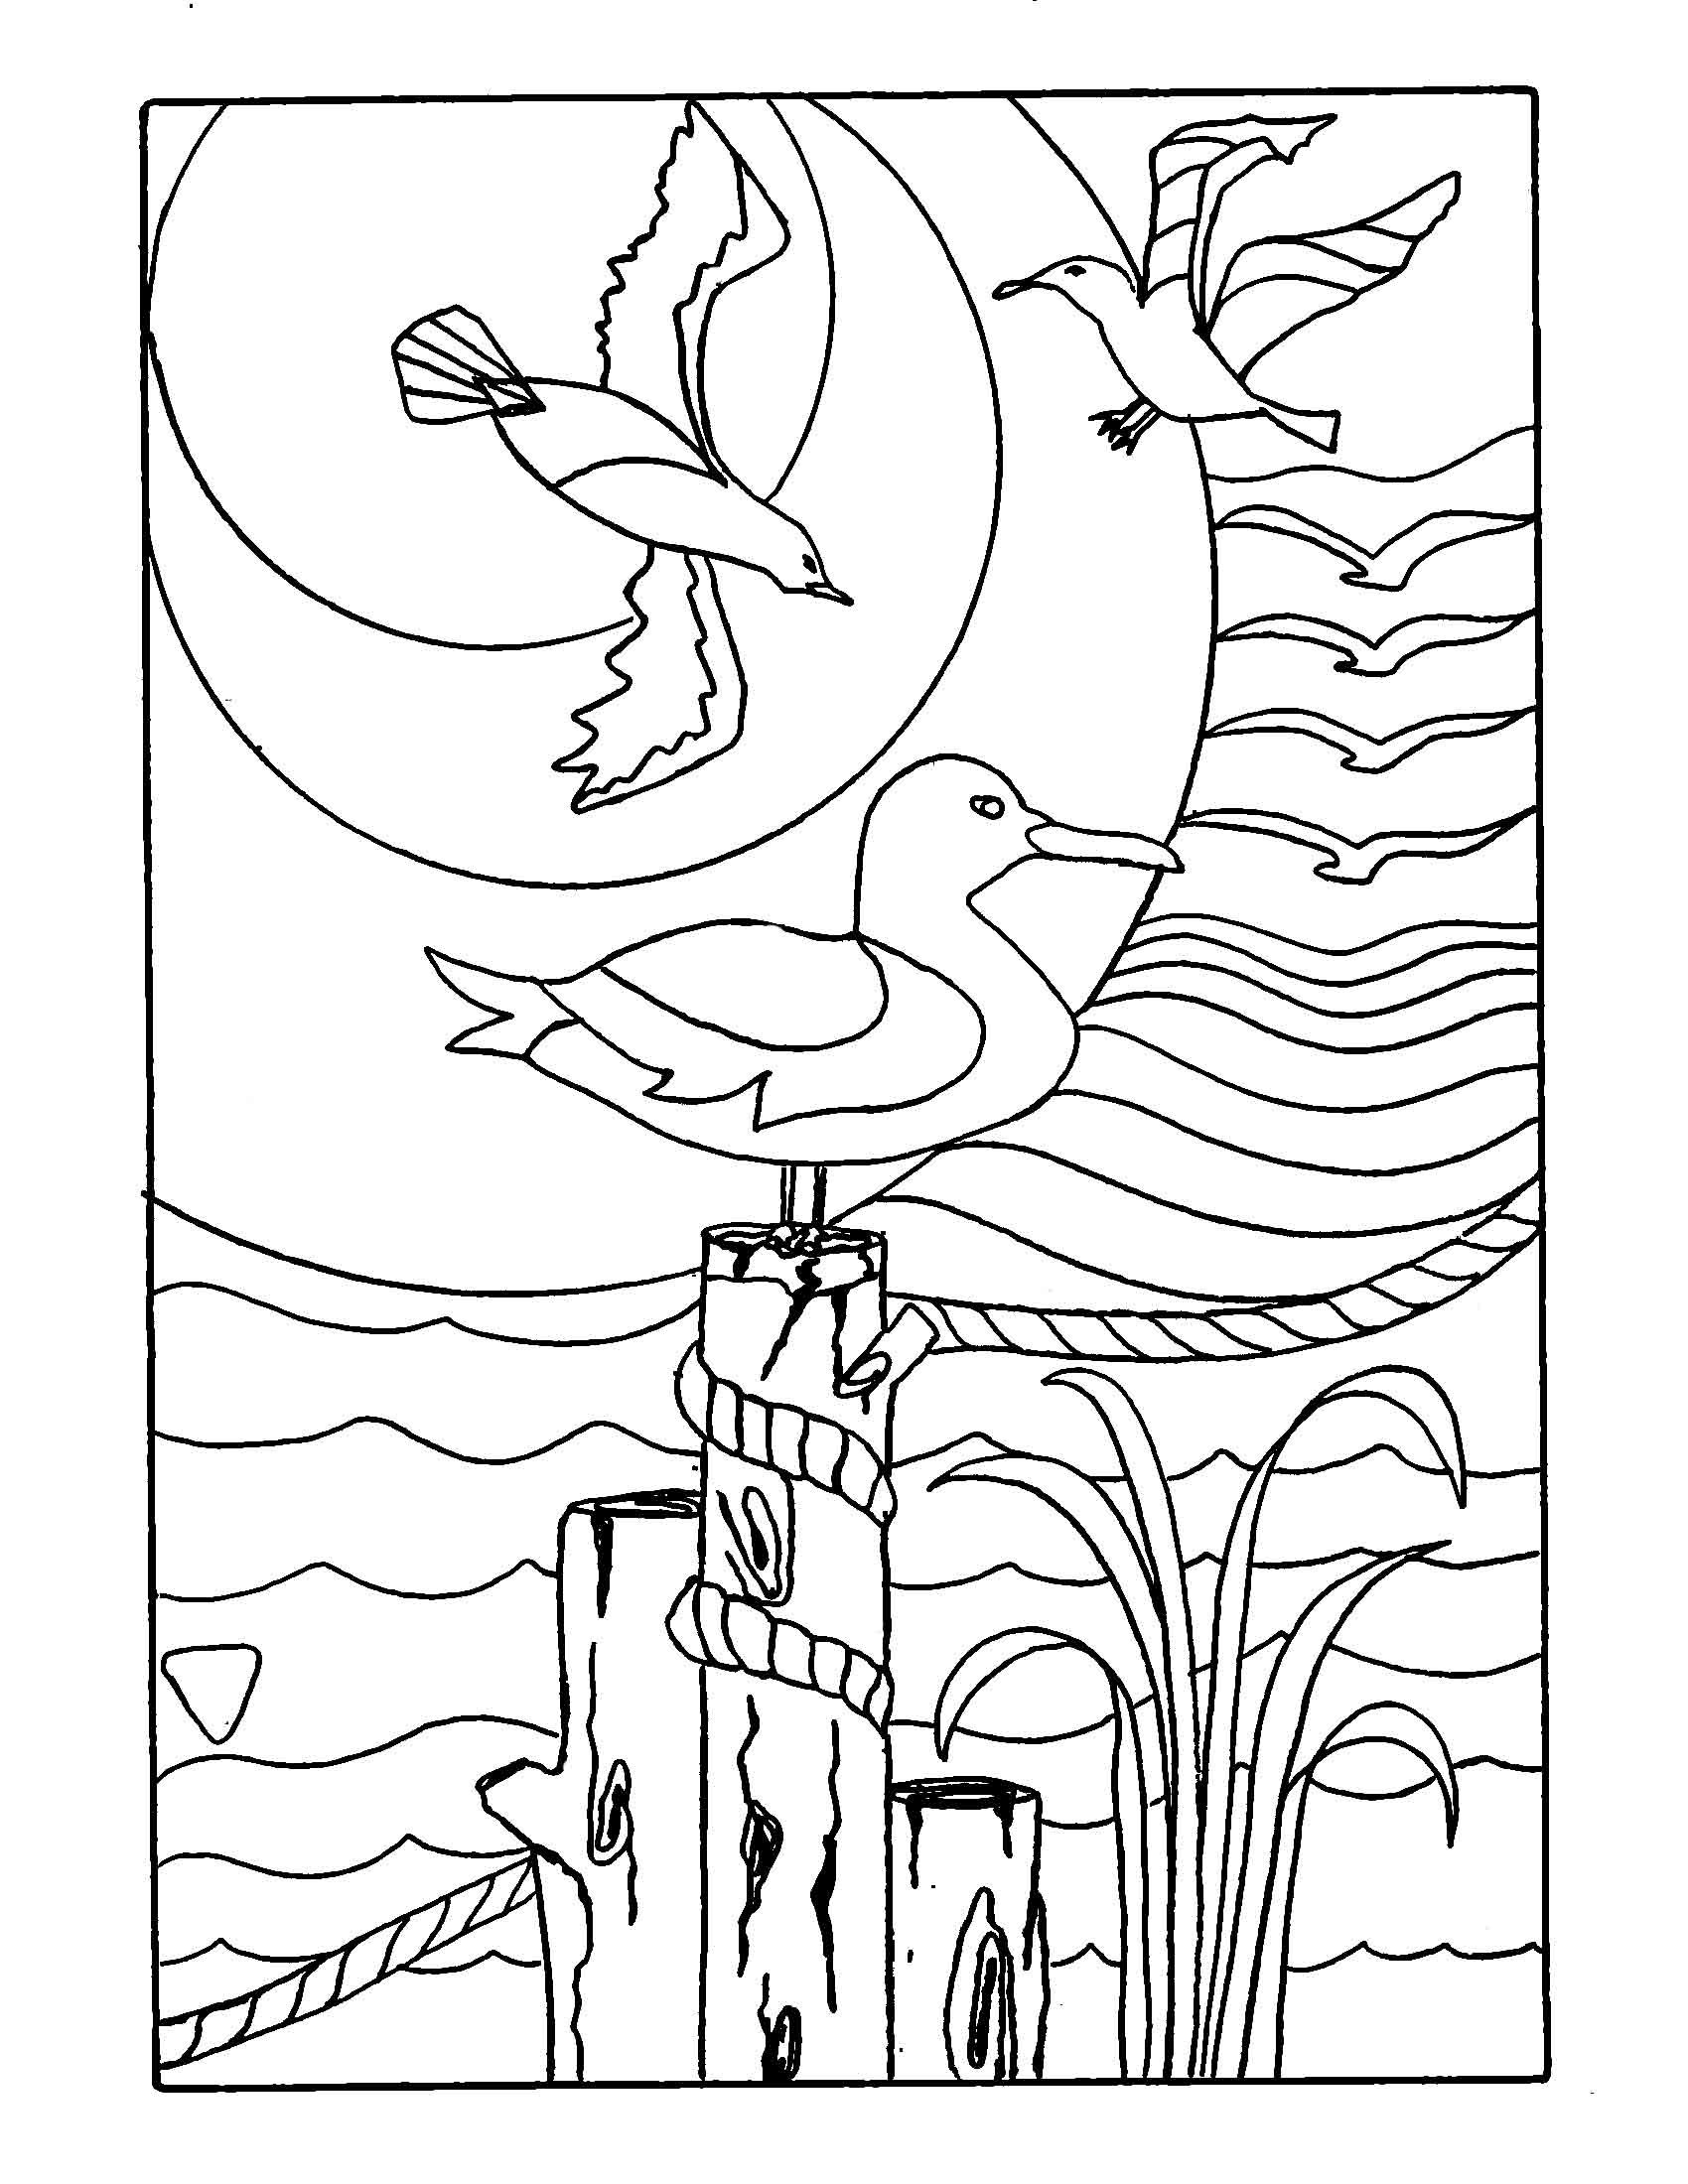 Soothing Seas Coloring Book — Sea Glass Searchers Club